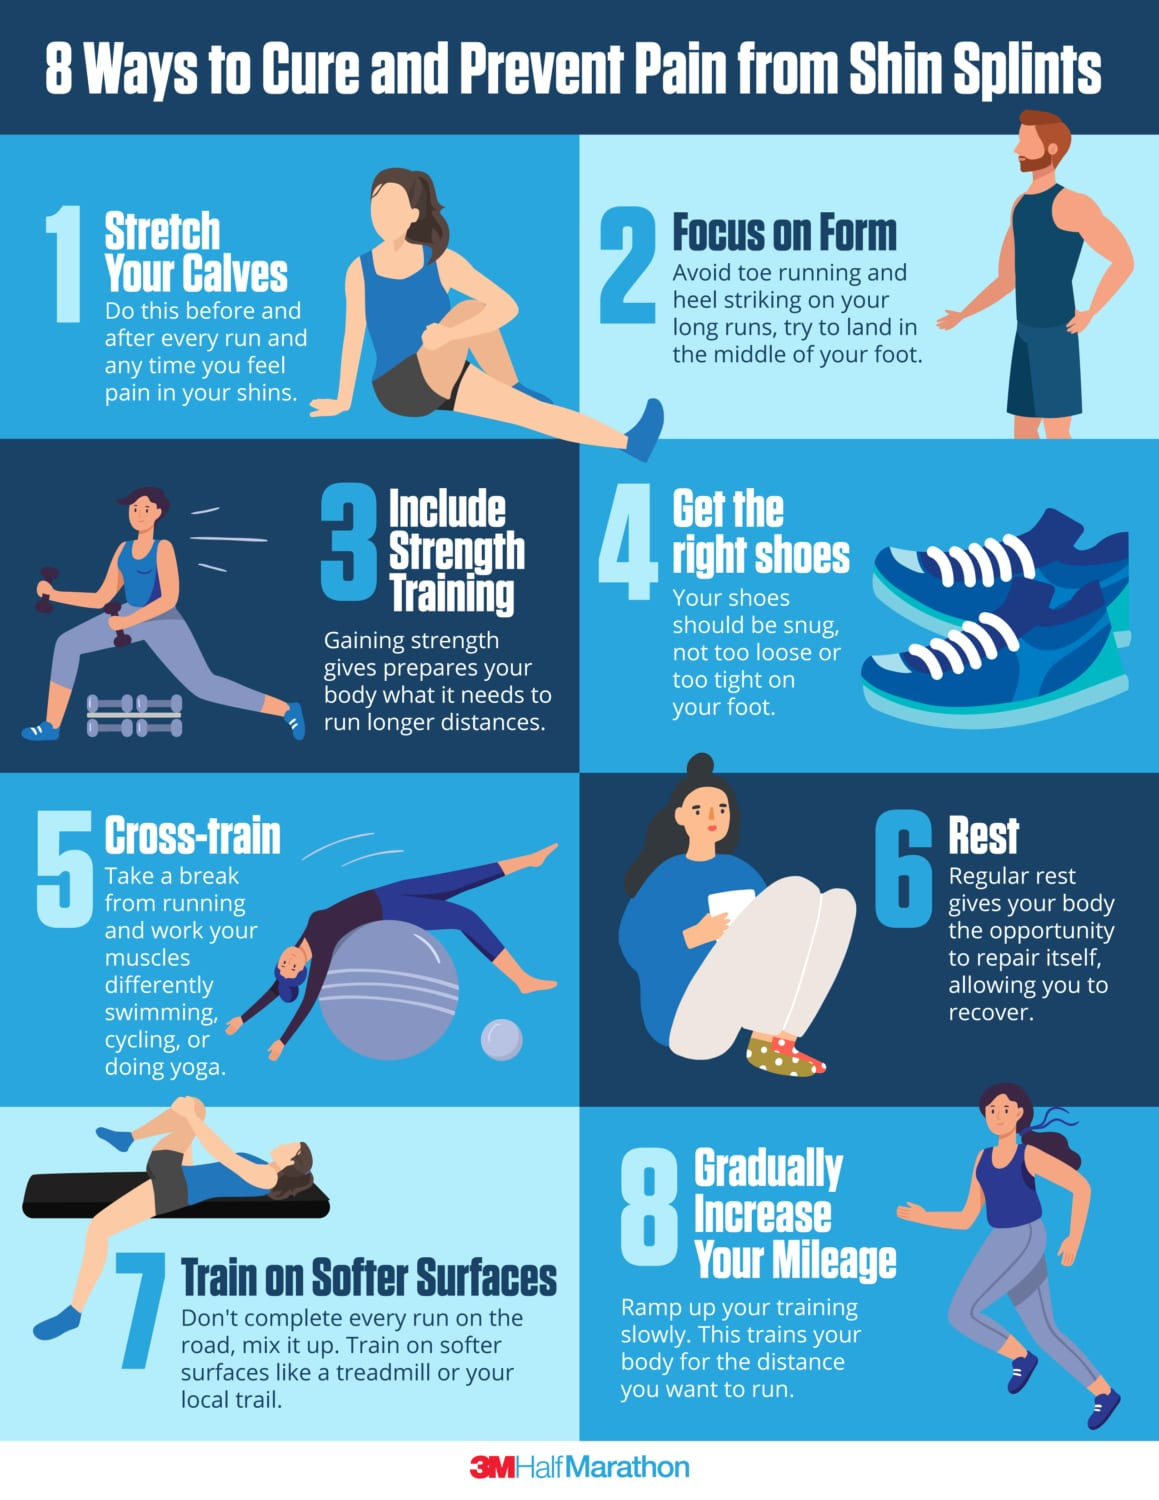 Image of an infographic breaking down 8 ways to cure and prevent pain from shin splints. 1. Stretch your calves before and after every run. 2. Focus on your form. Try landing in the middle of your foot on longs runs. 3. Include strength training. 4. Get the right shoes. Running in running shoes does make a difference! 5. Cross-train. Working muscles differently can strengthen them. 6. Rest. Give your body the opportunity to repair itself. 7 Train on softer surfaces like a treadmill or your local trail. 8. Gradually increase your mileage. Build your body up overtime to the desired mileage.